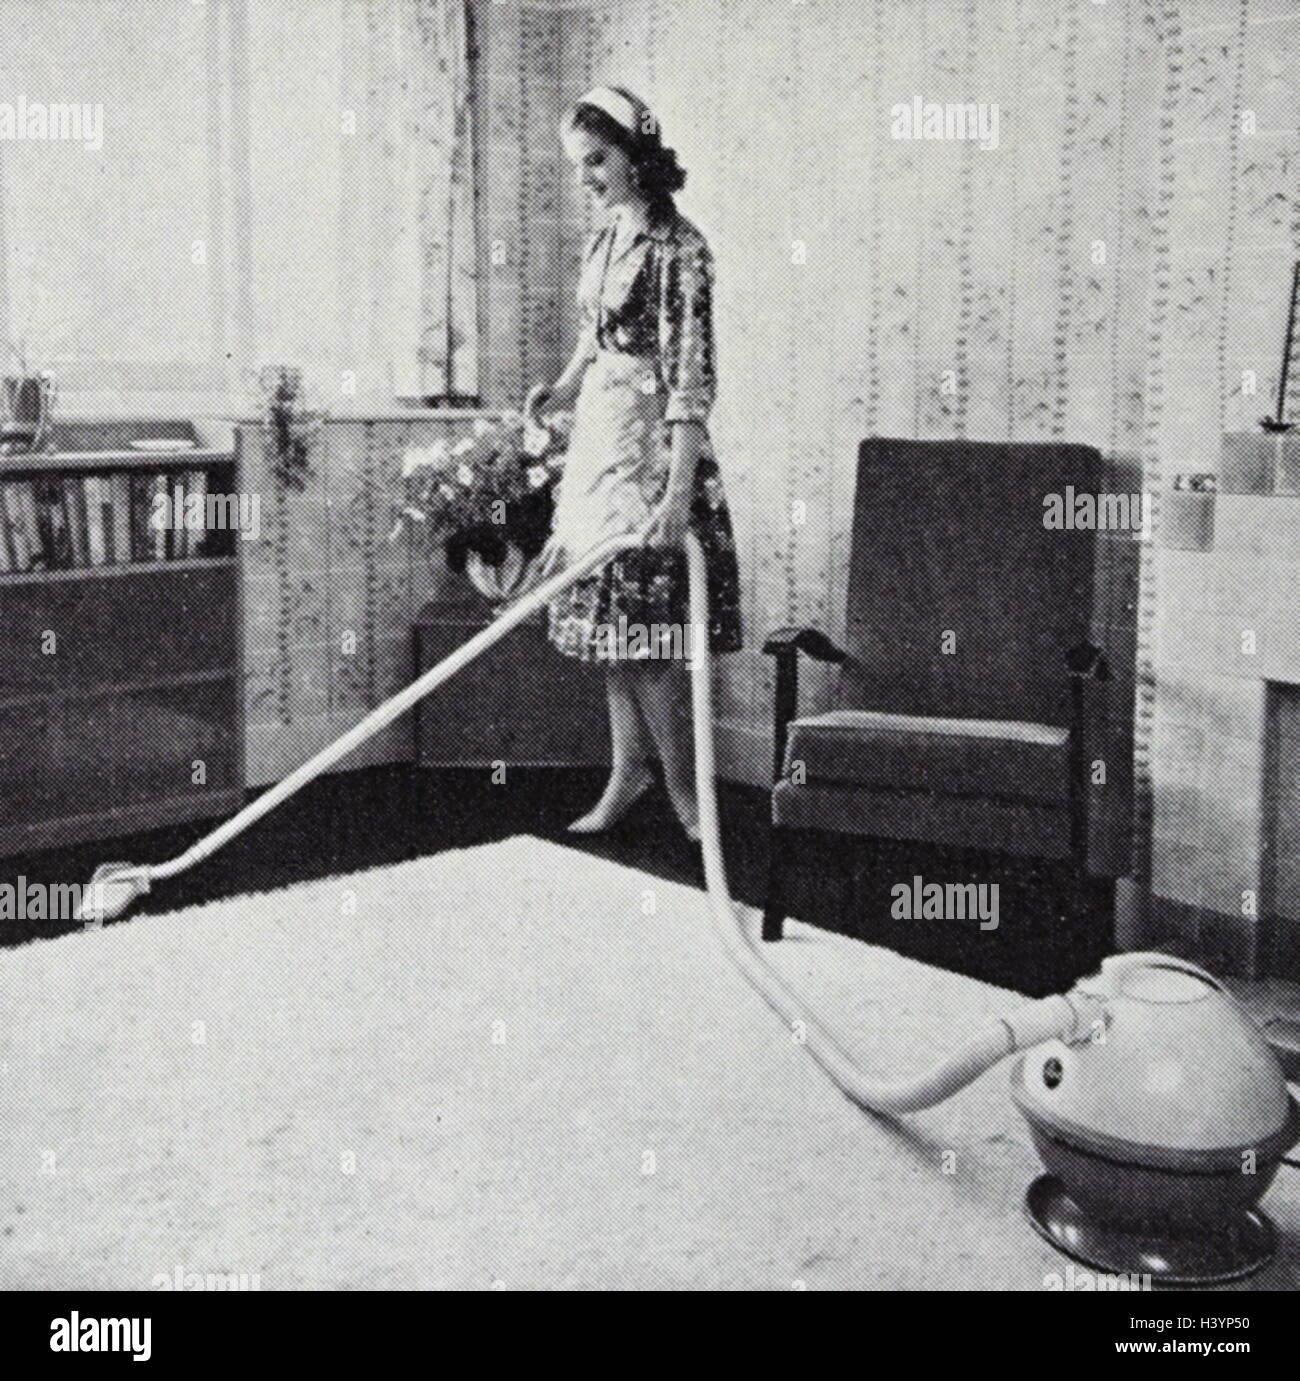 Photograph of a 1950s housewife performing some chores. Dated 20th Century - Stock Image